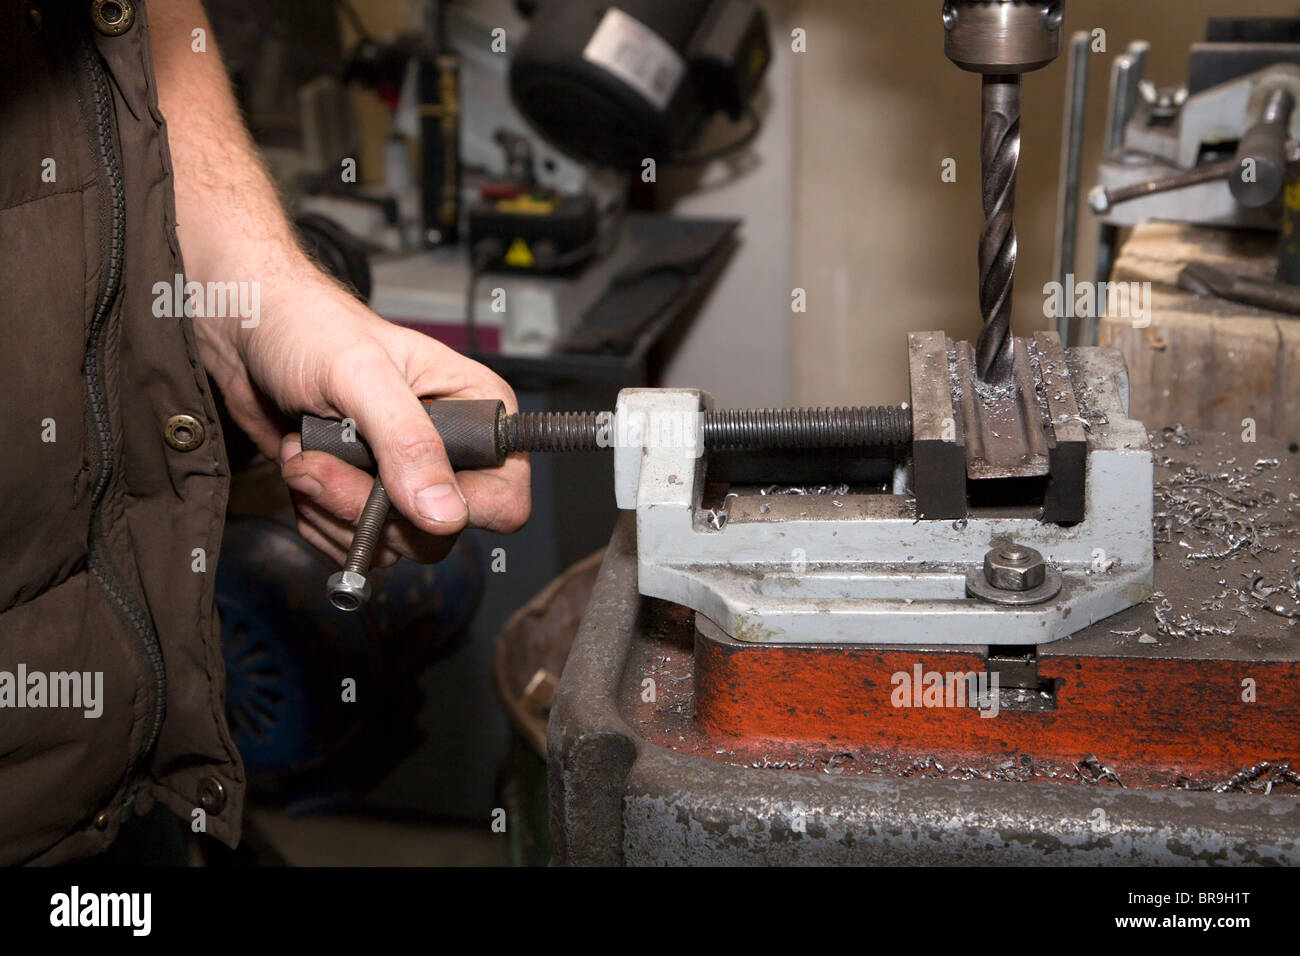 hands by the work on the drill - Stock Image